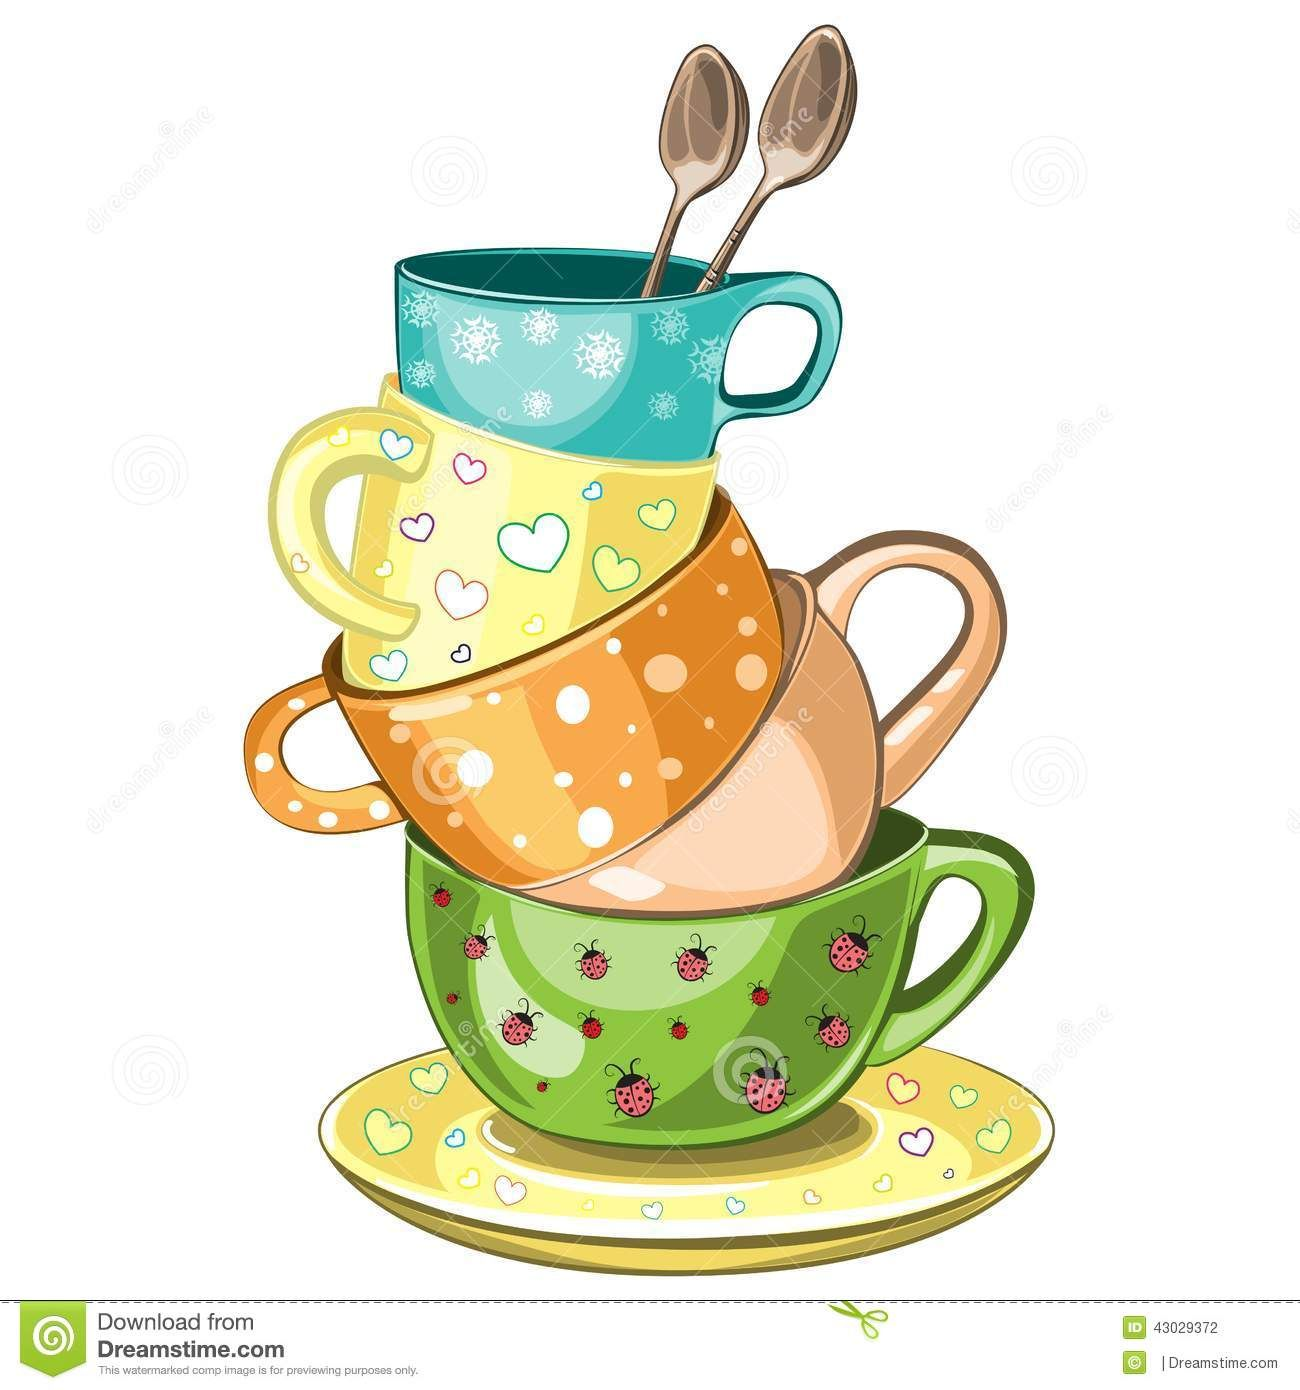 Tea clip art stock. Cups clipart stacked cup